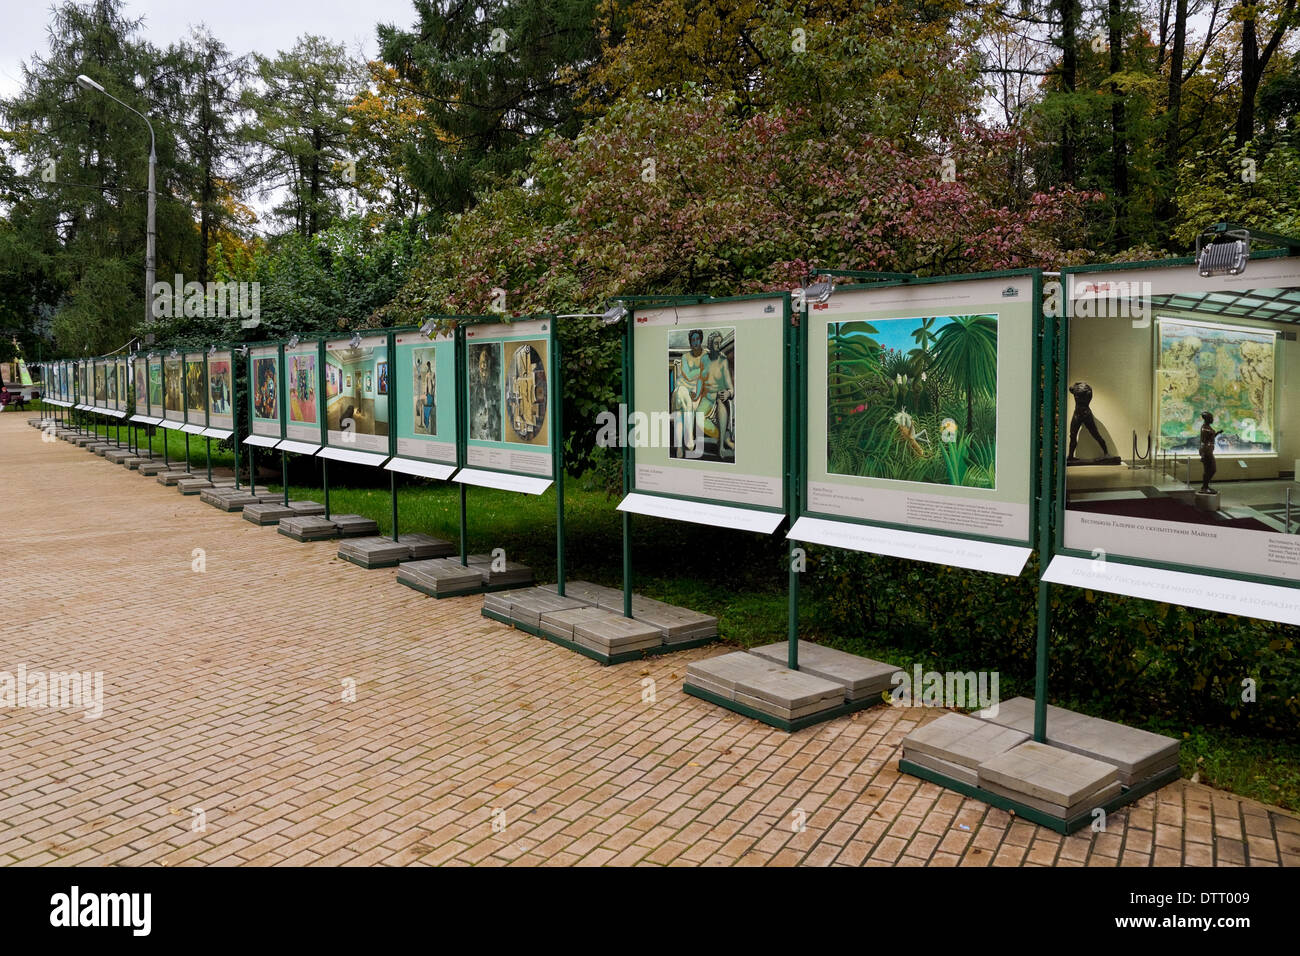 Reproductions of great artists in Sokolniki Park in Moscow on September 22, 2013 - Stock Image